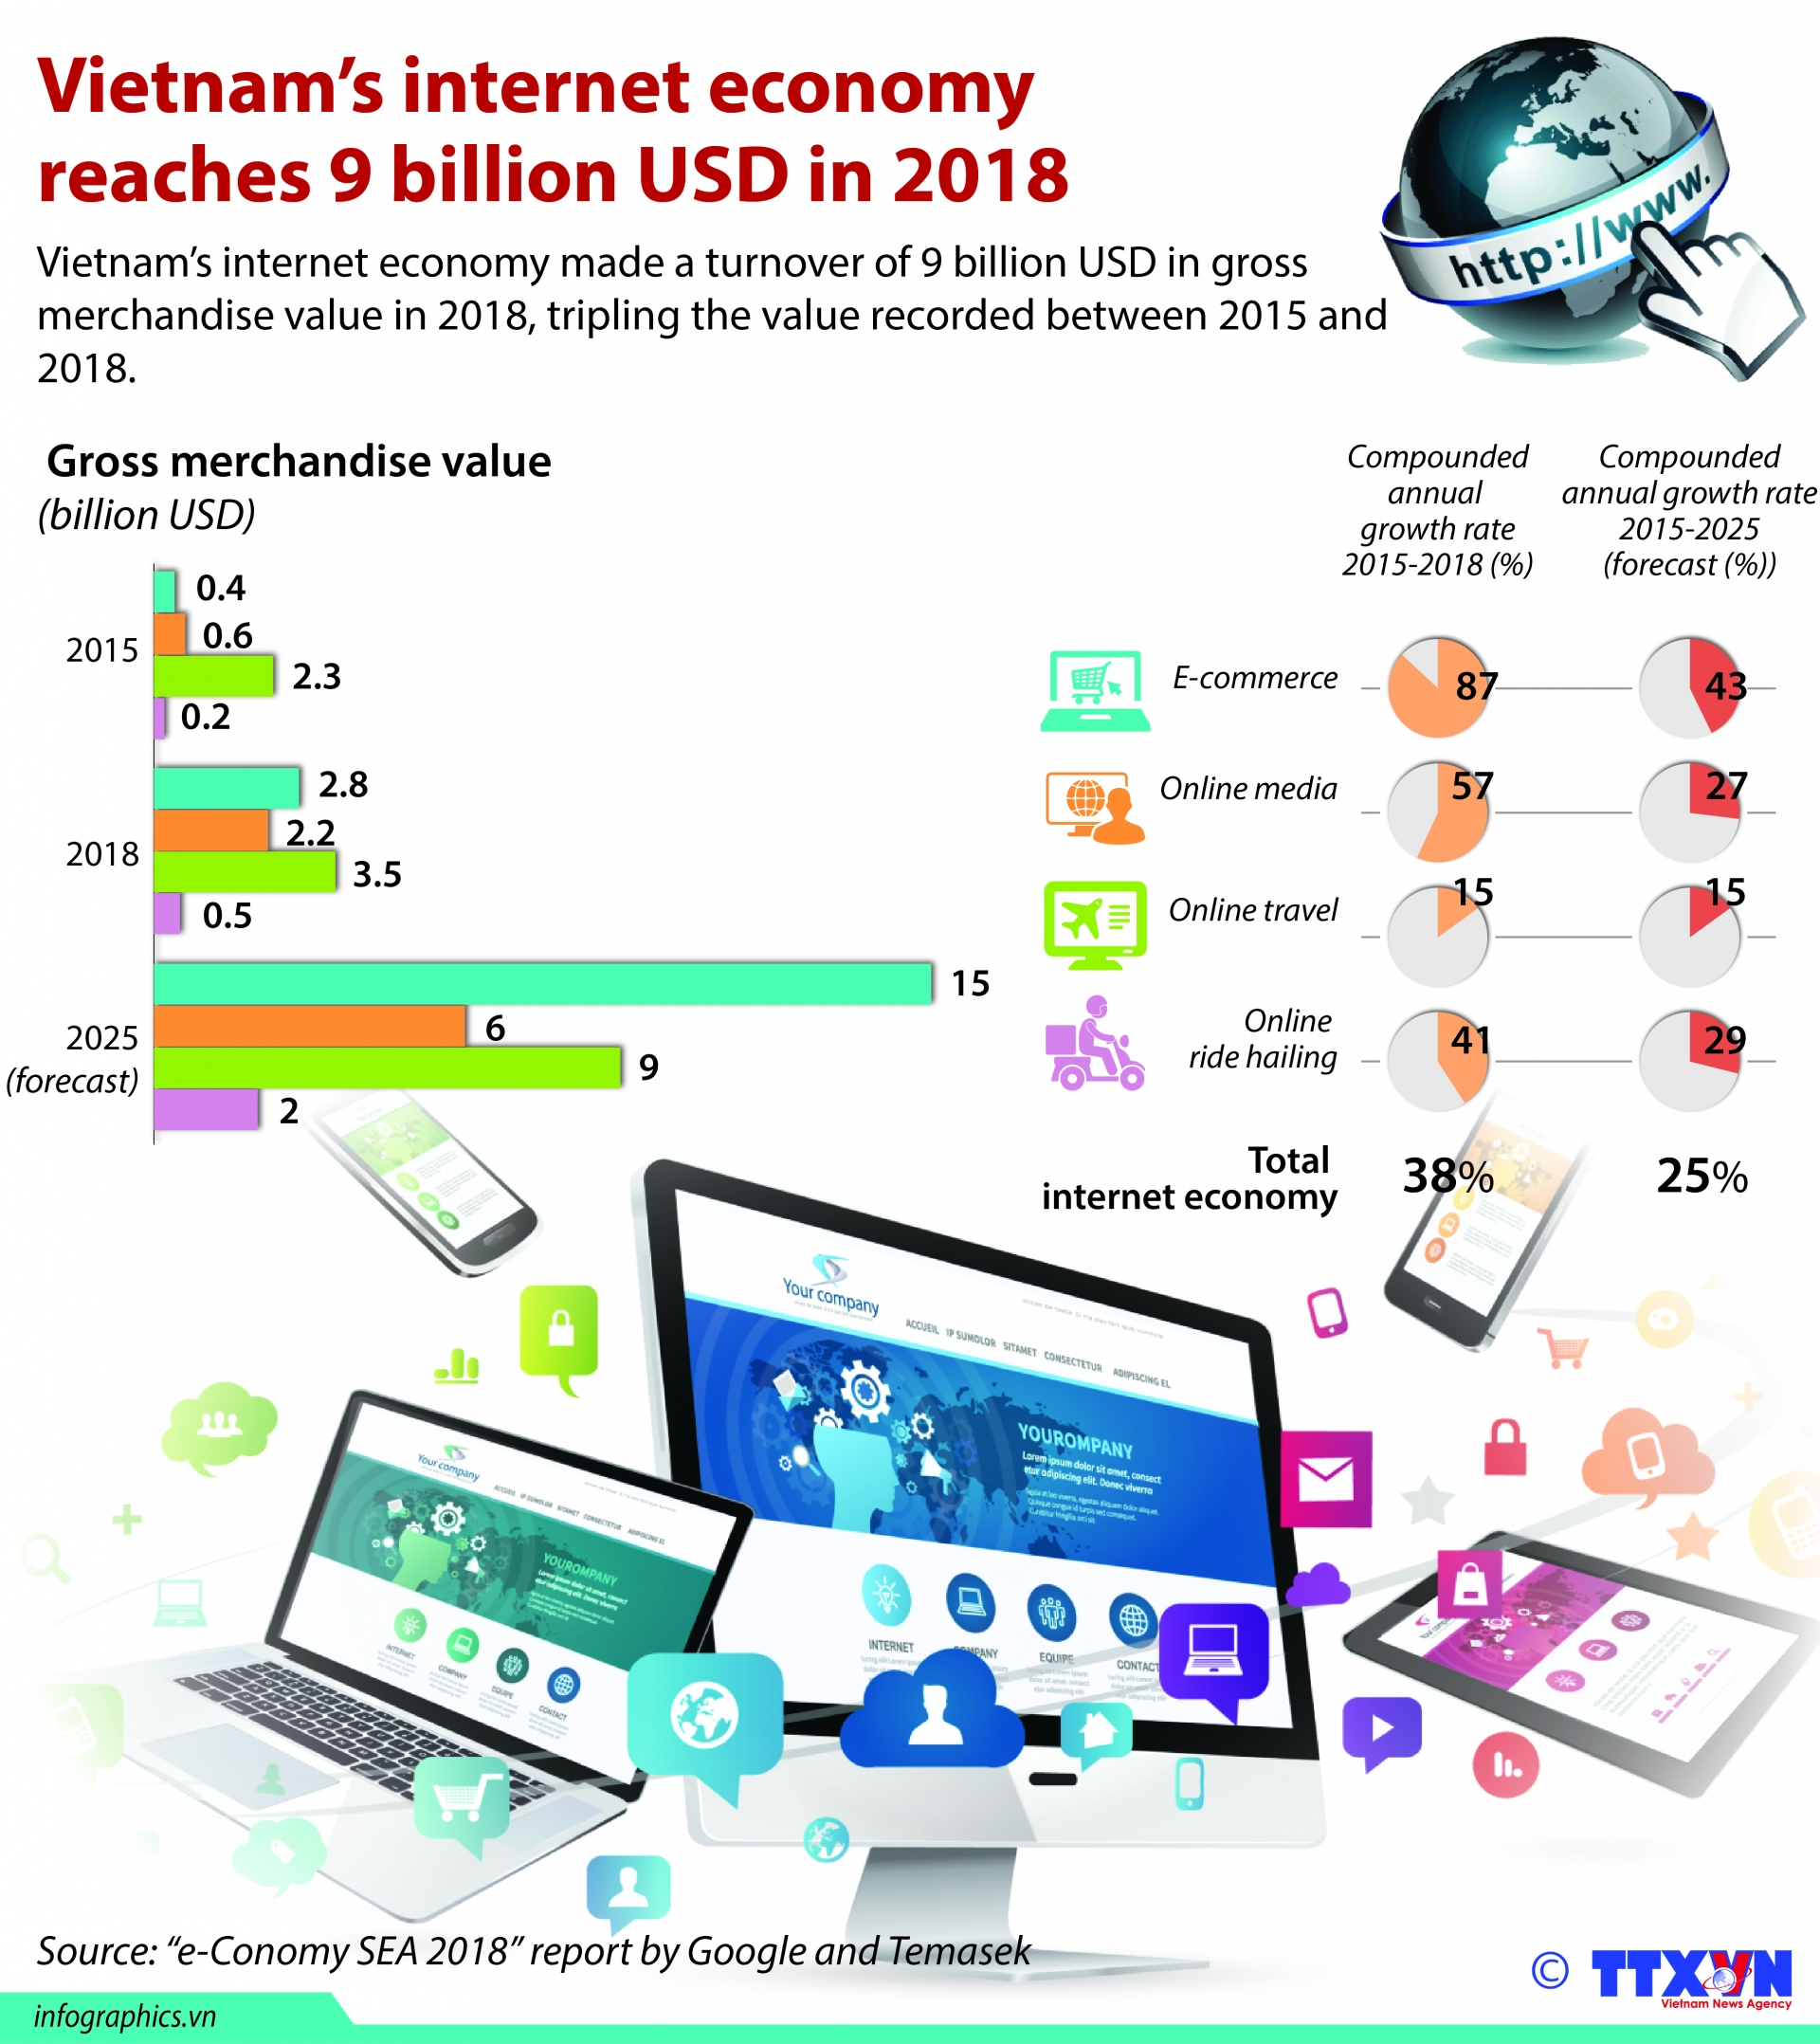 vietnams internet economy reaches 9 billion usd in 2018